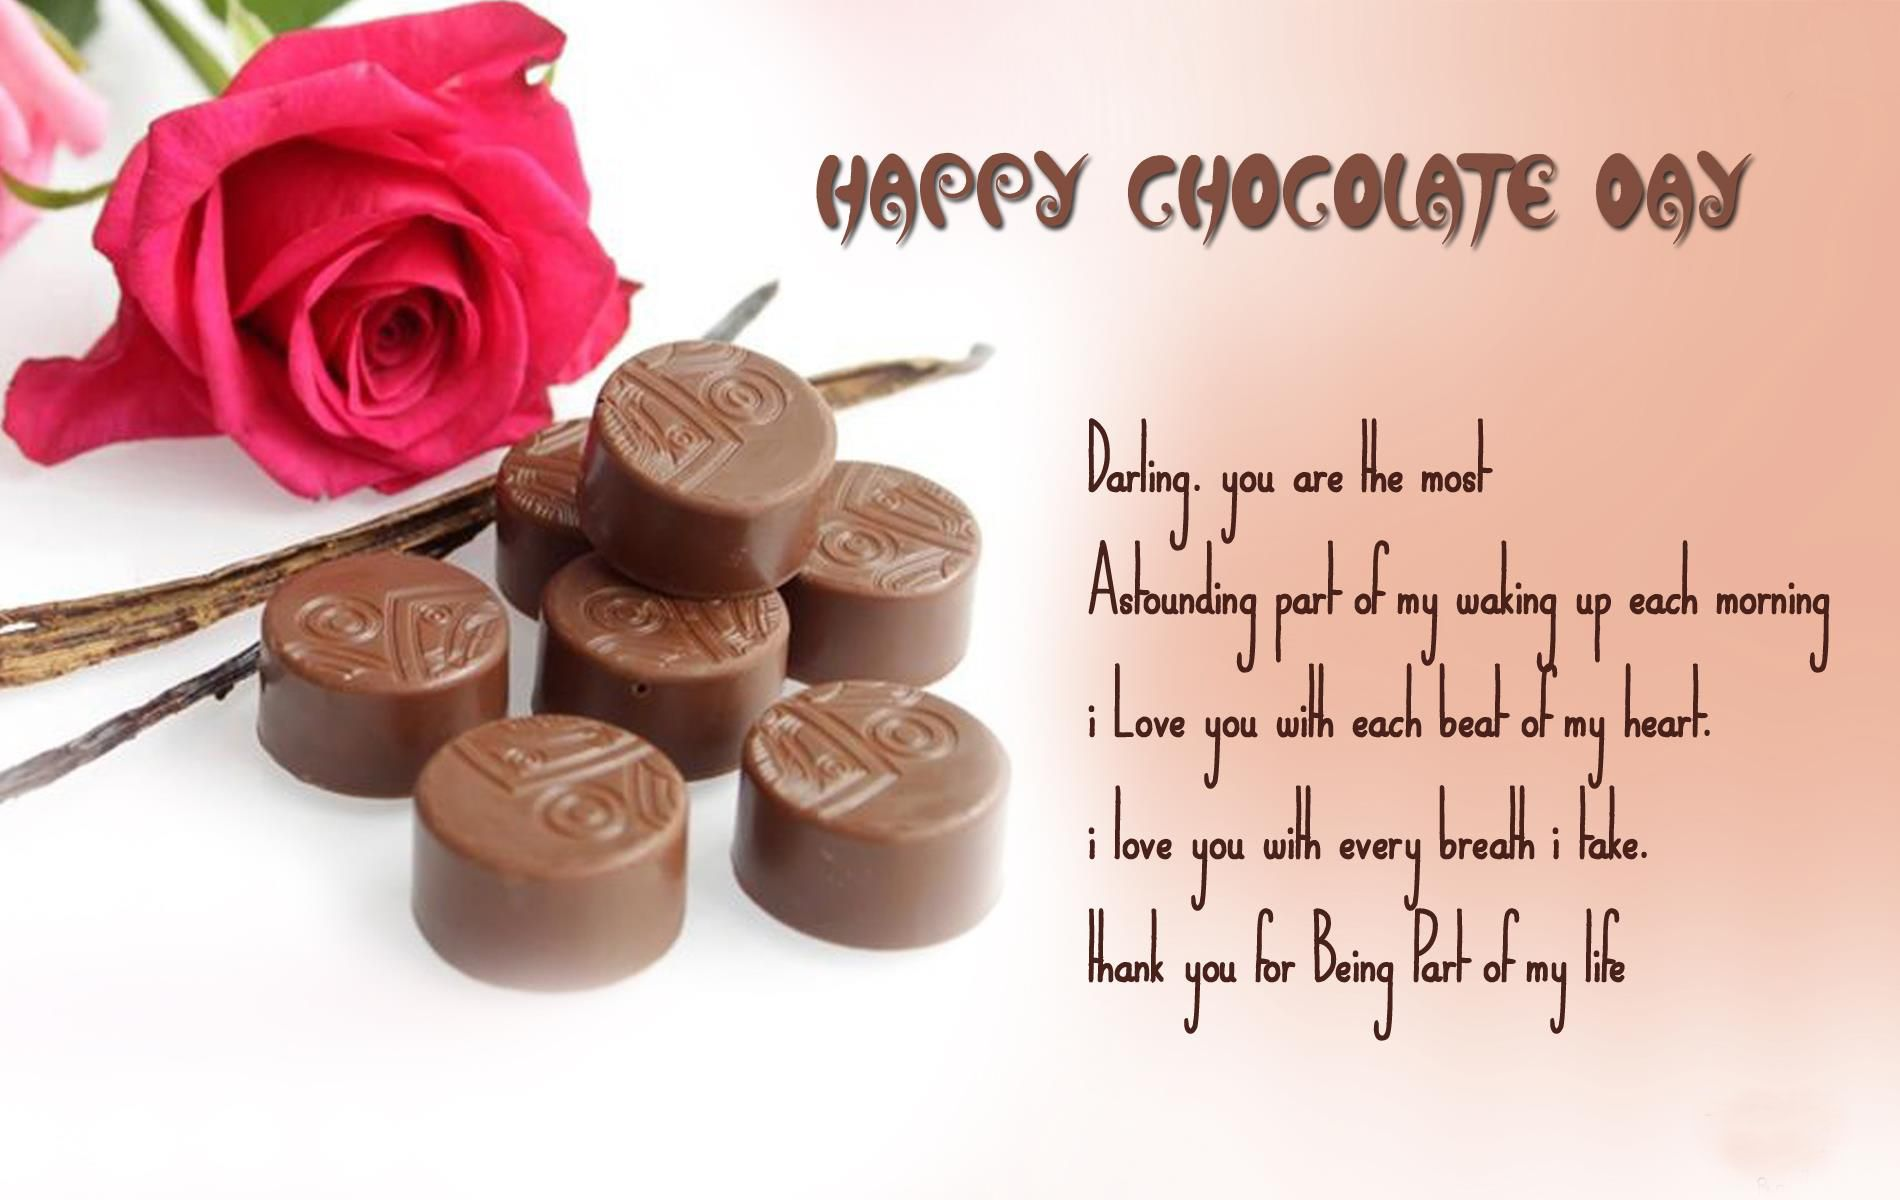 Chocolate Day Wallpapers for Mobile Desktop CGfrog 1900x1200